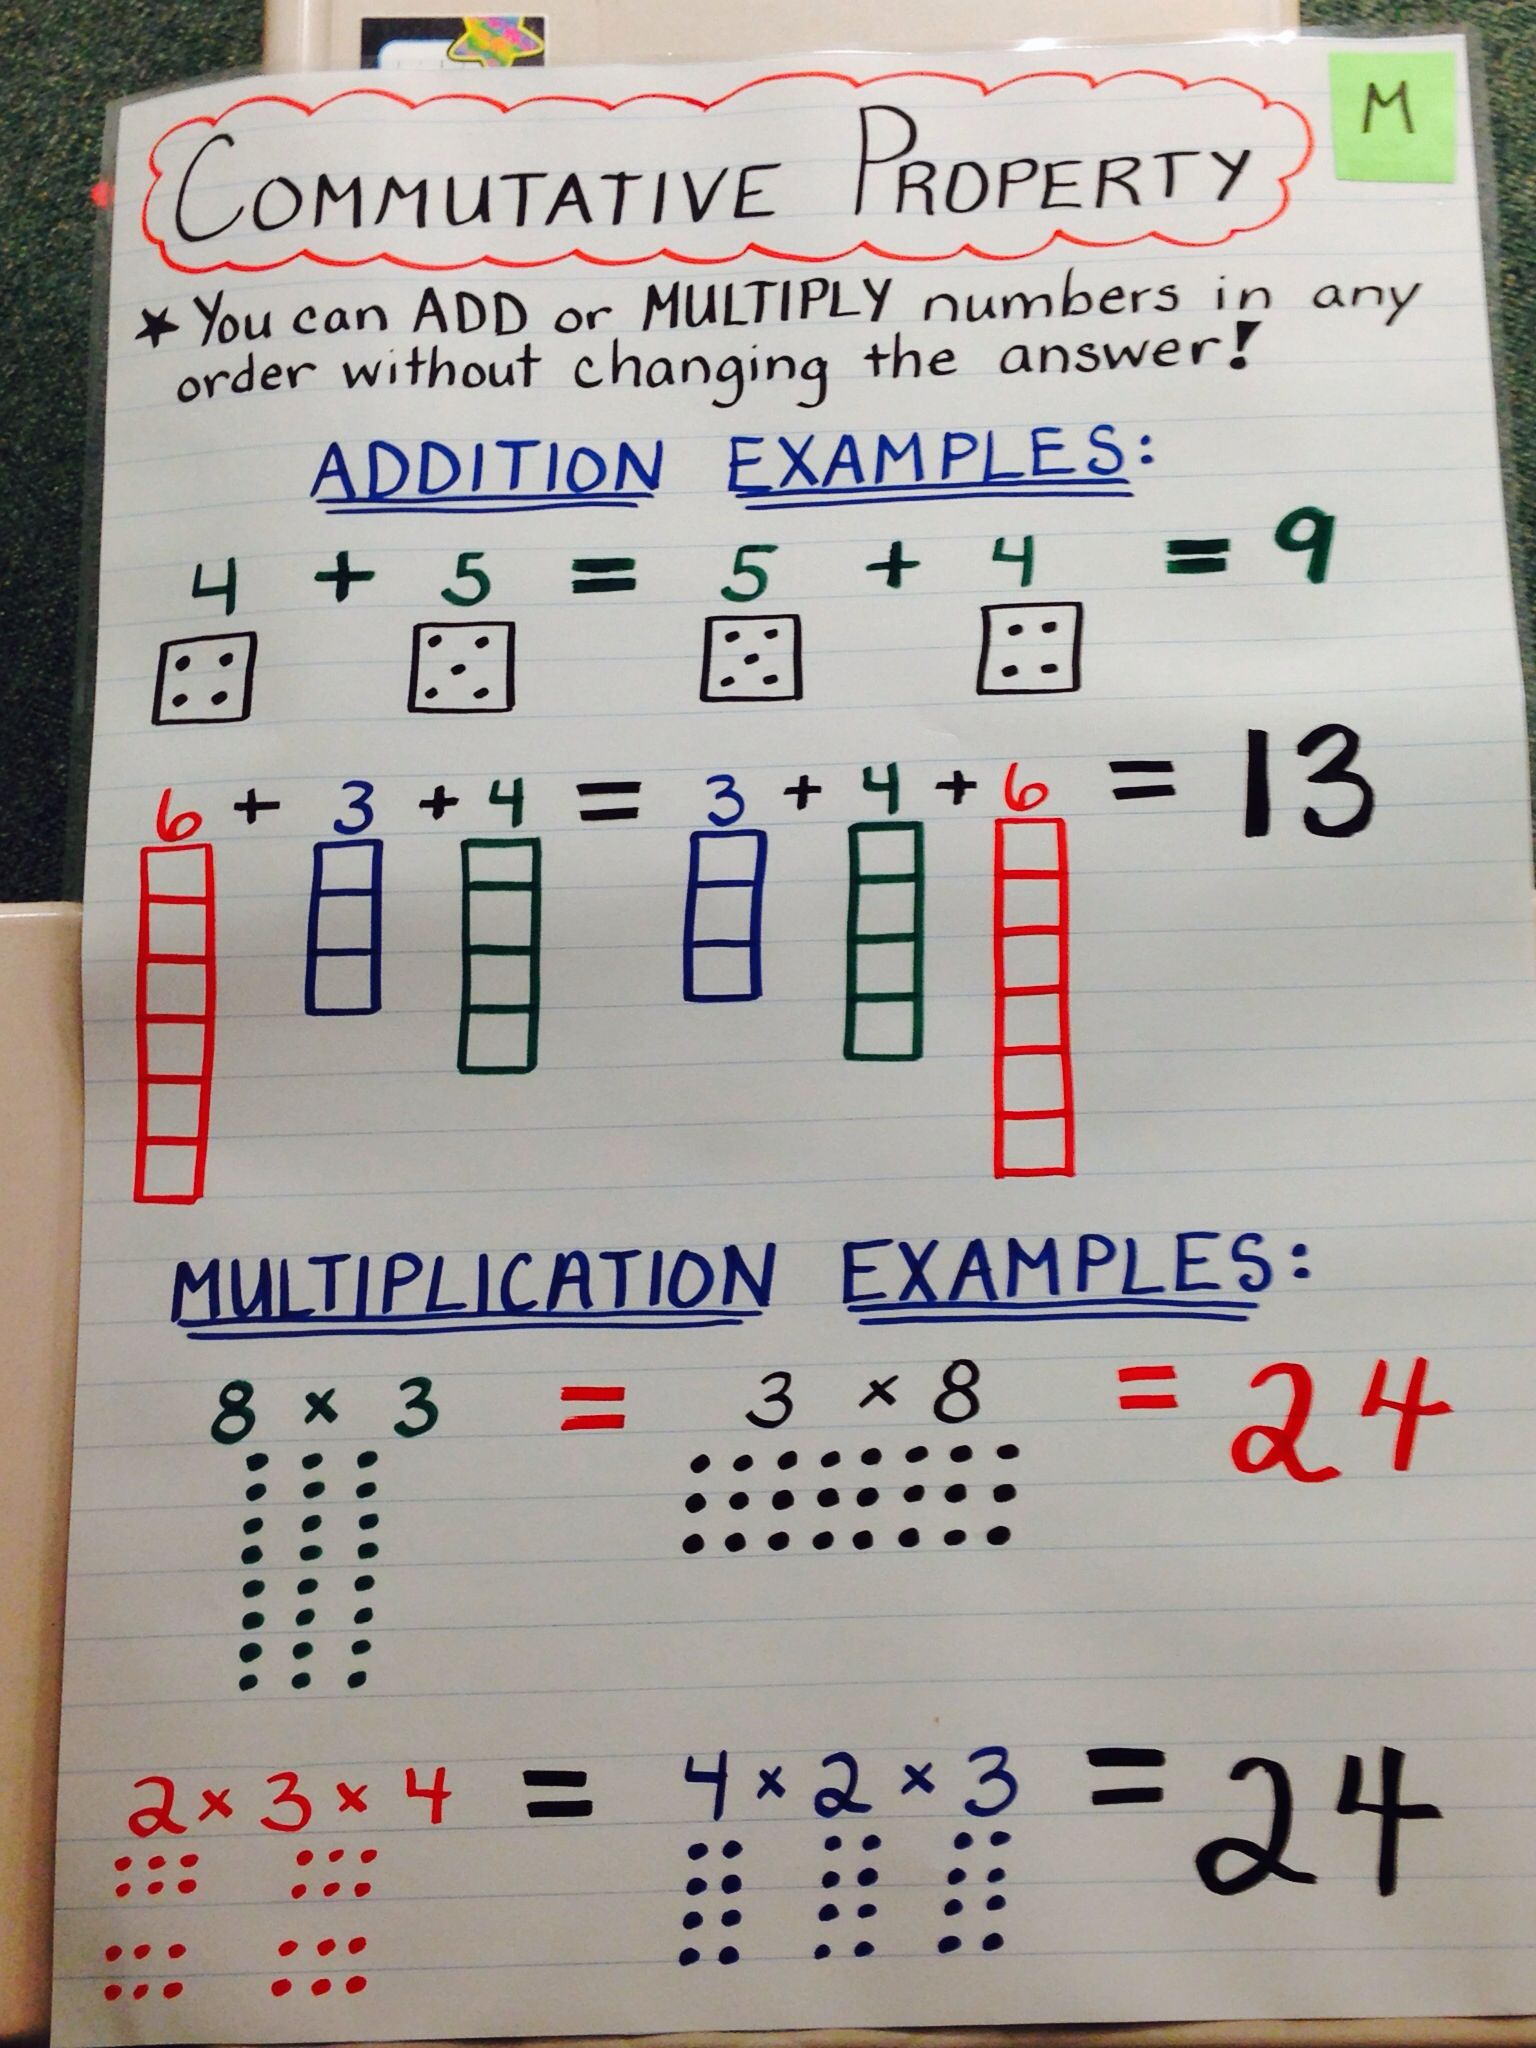 Math Anchor Chart Commutative Property School Life School Life